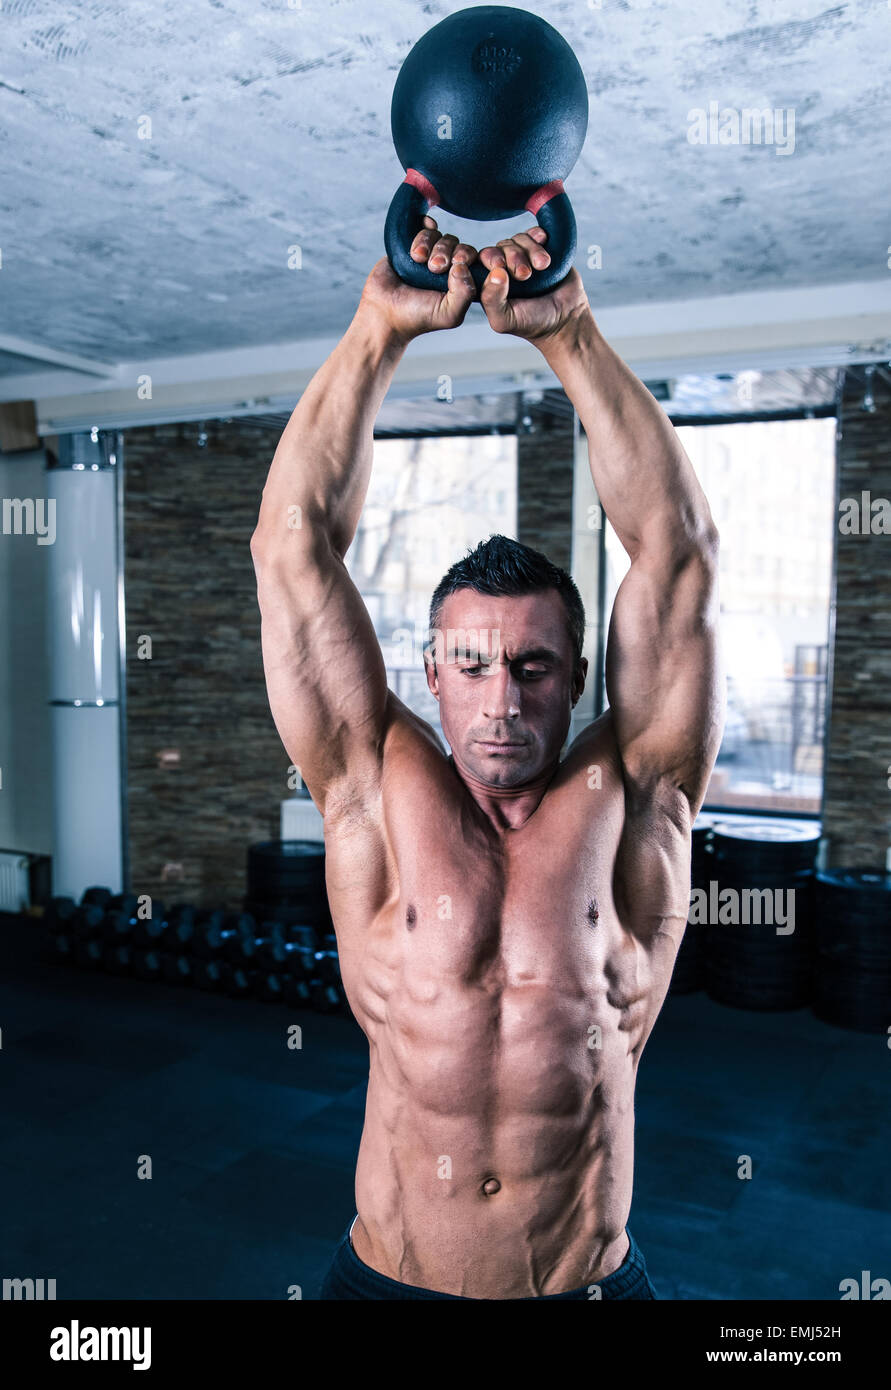 Bodybuilder man workout with kettle ball in crossfit gym - Stock Image